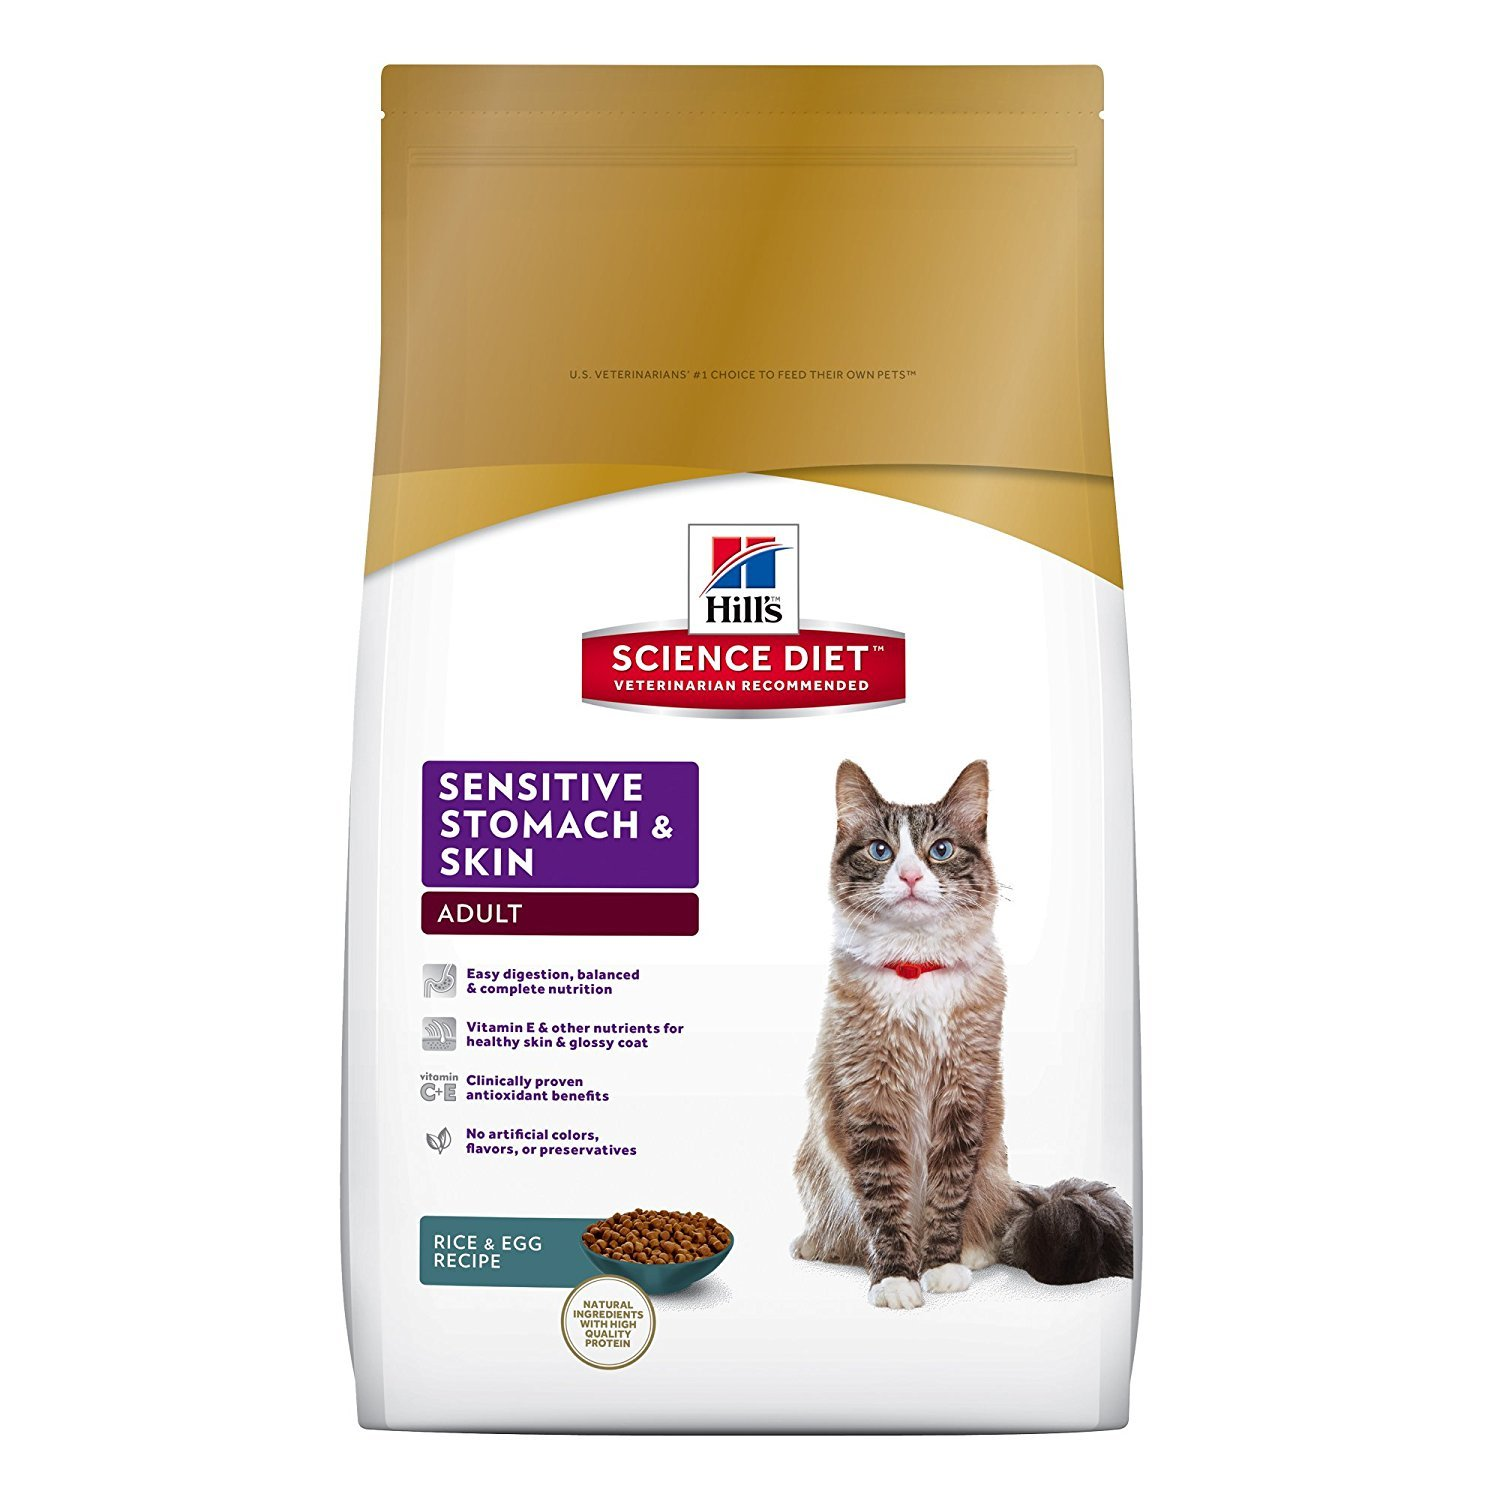 best cat food for sensitive stomach vomiting hills science diet cat food